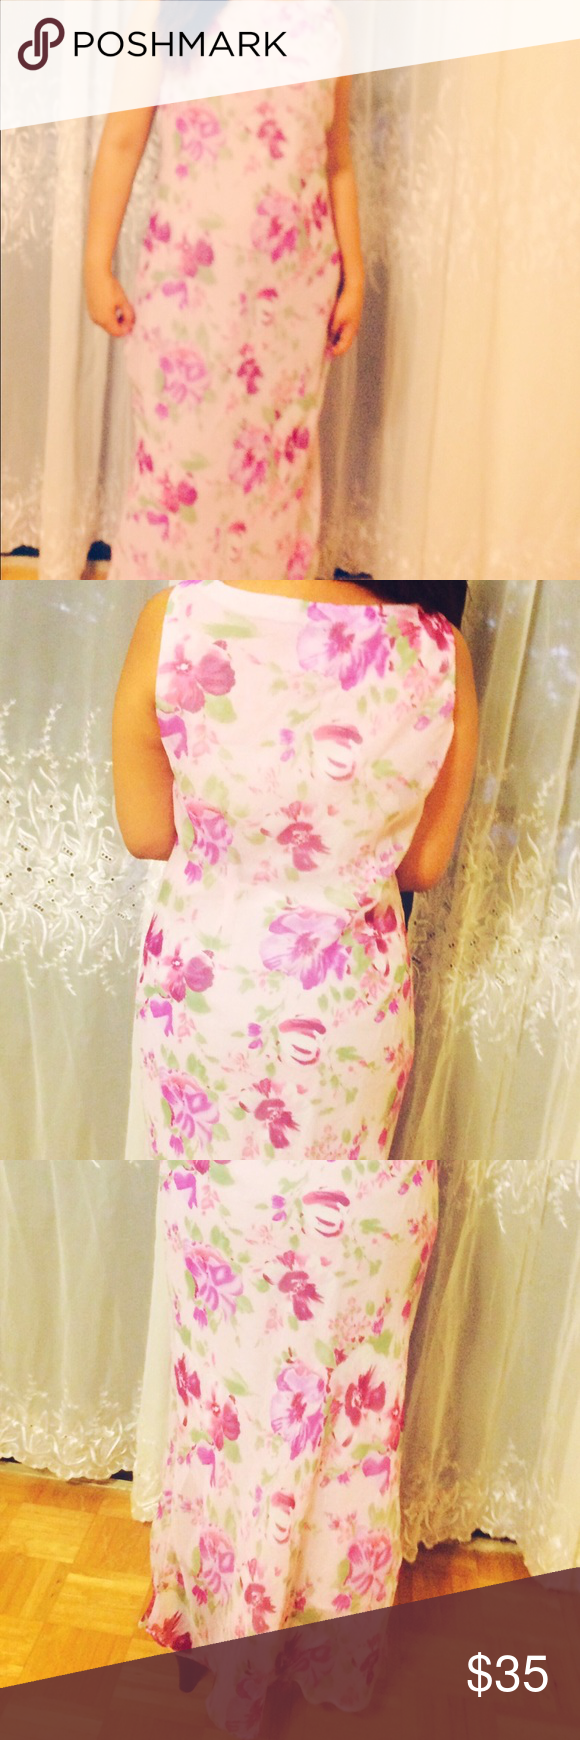 💞 Ronni Nicole Pink floral flare 👼🏻 Maxi | Pinterest